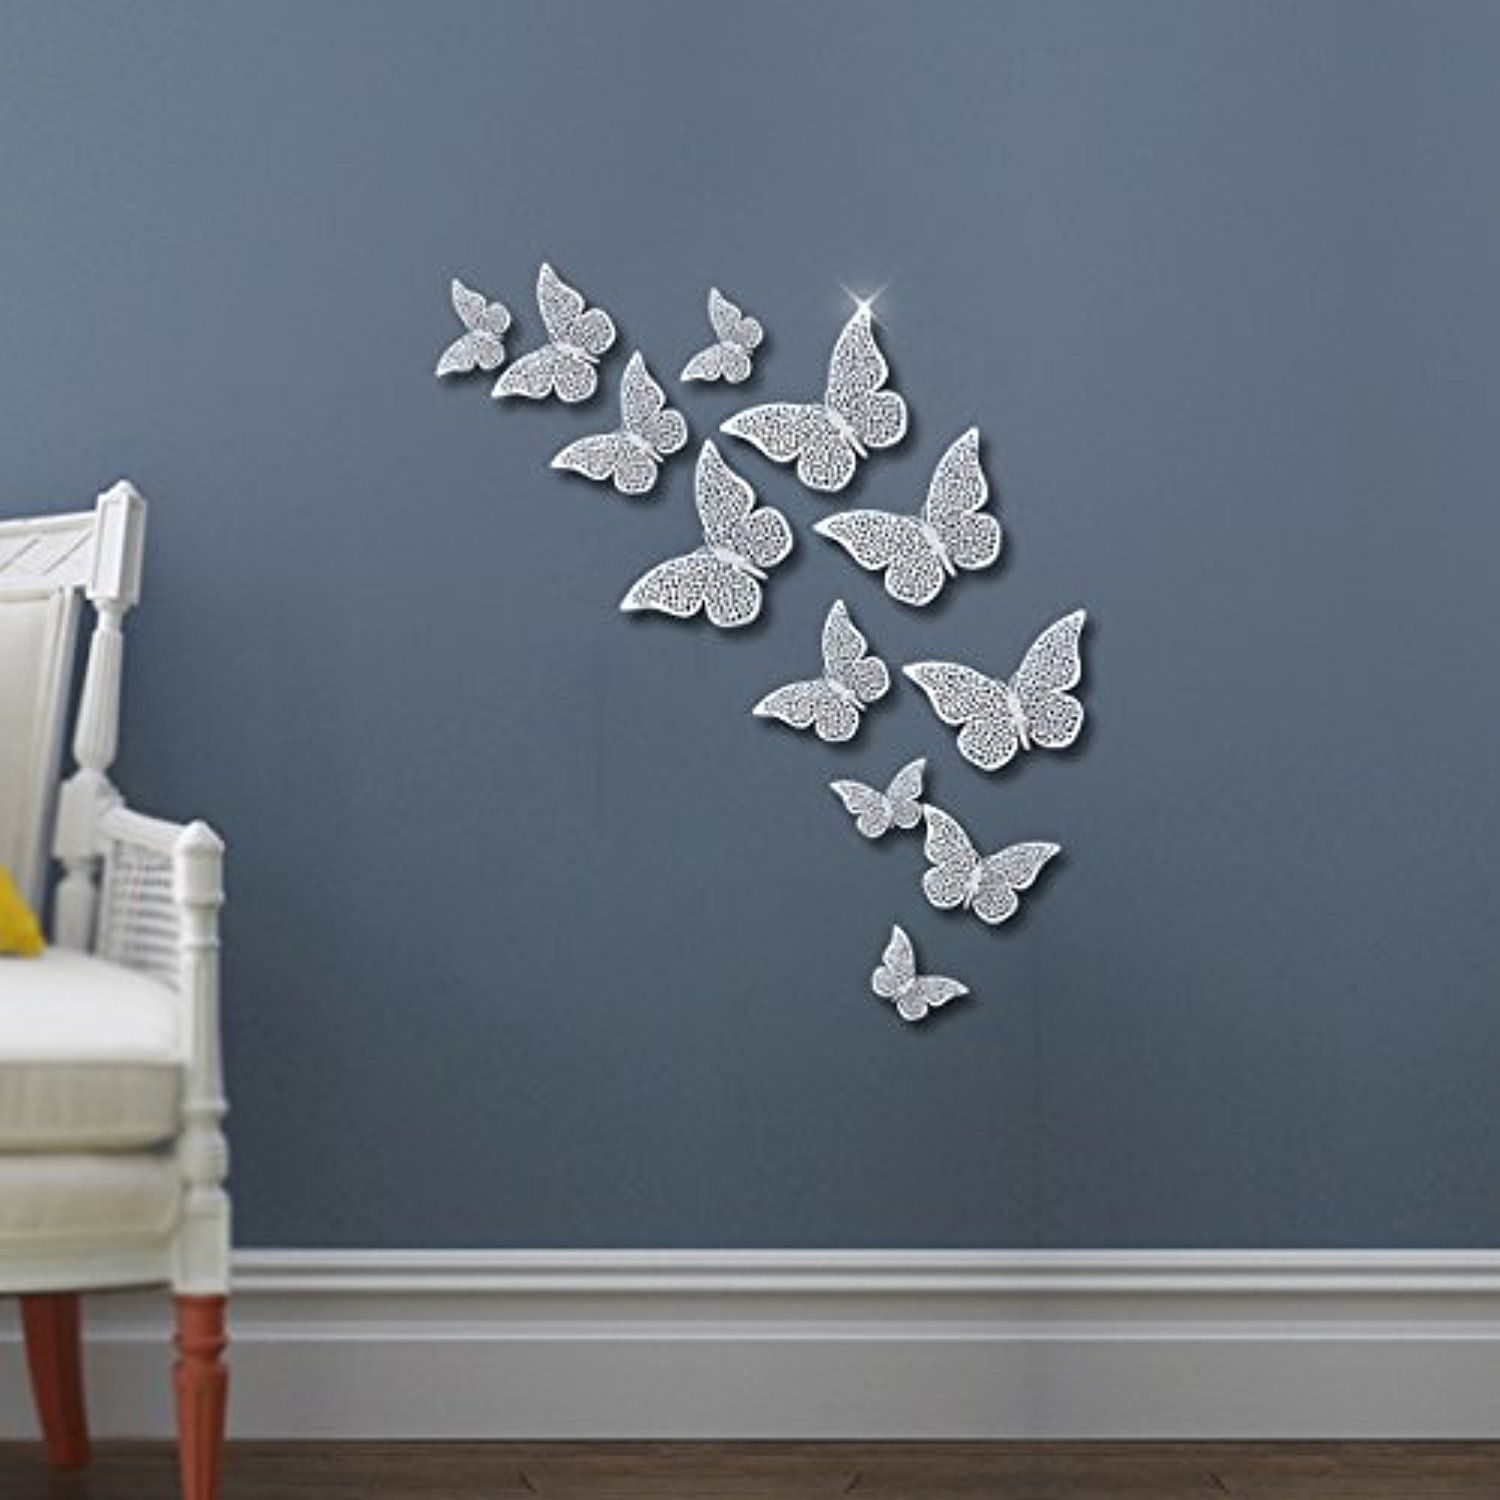 Déco Murale Diy Fly Spray Silver Butterfly Mural Decor 36pcs Removable Hollow Out